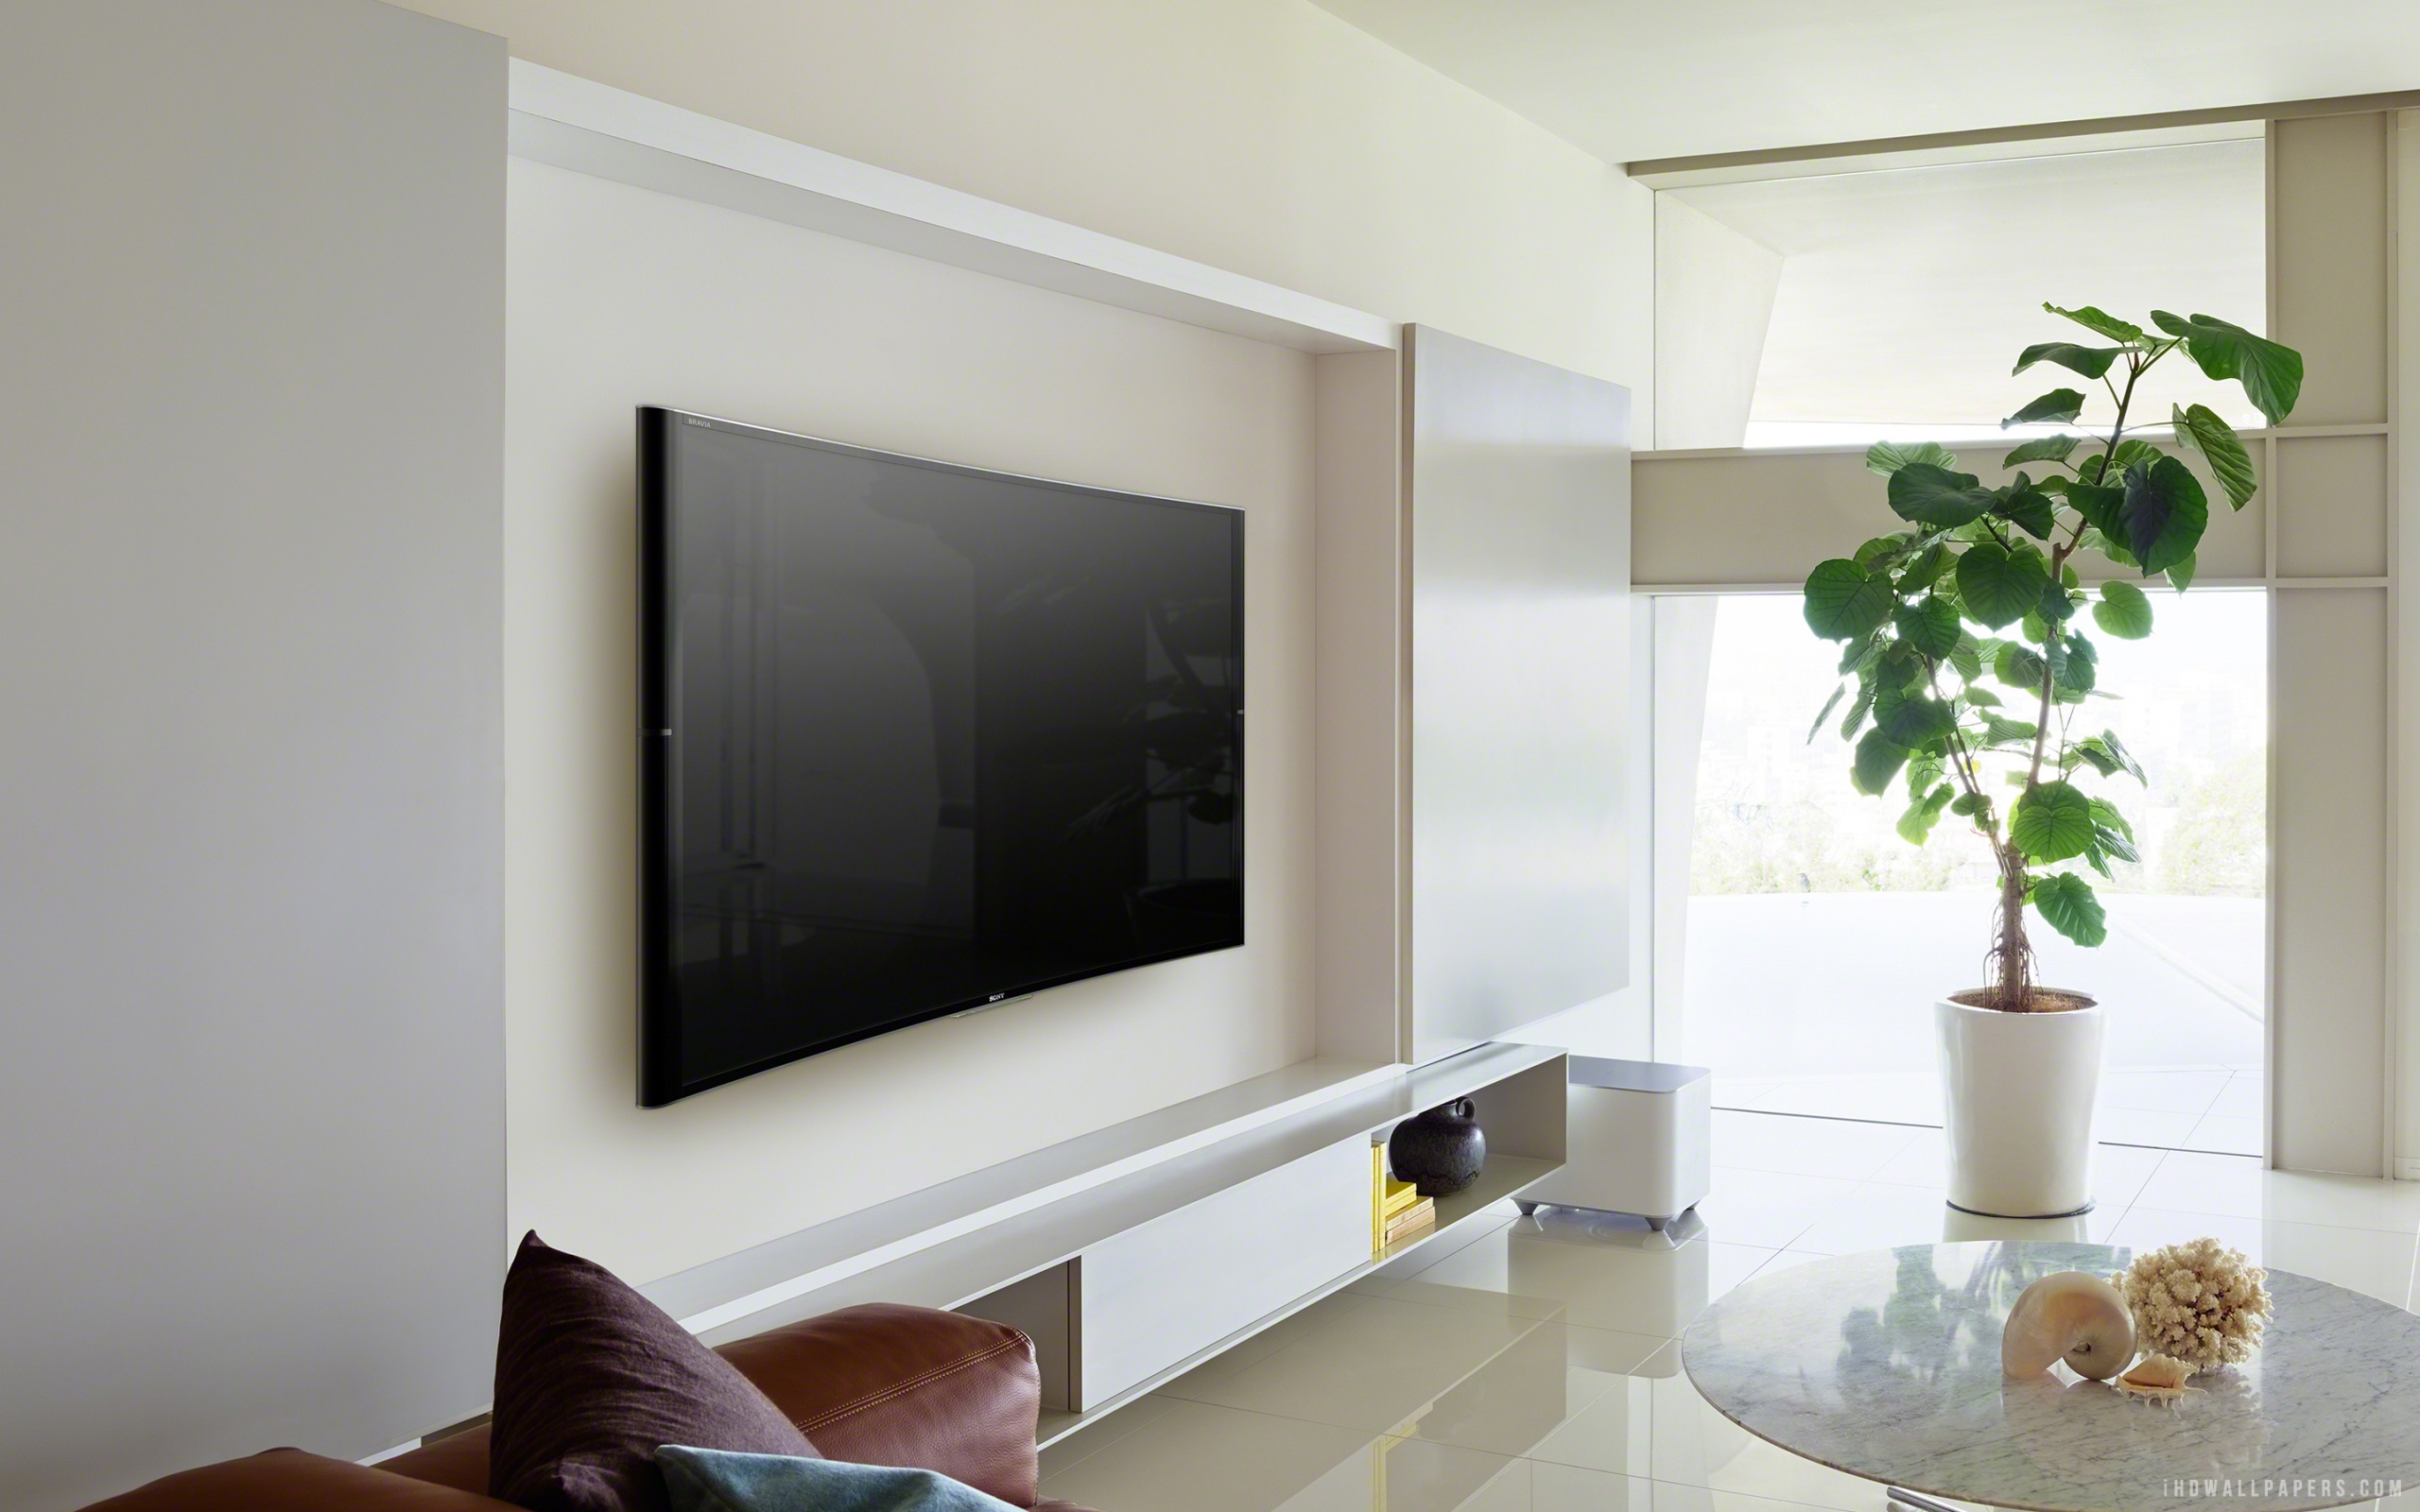 What Is The Best Mount To Use For Your Flat Panel Tv